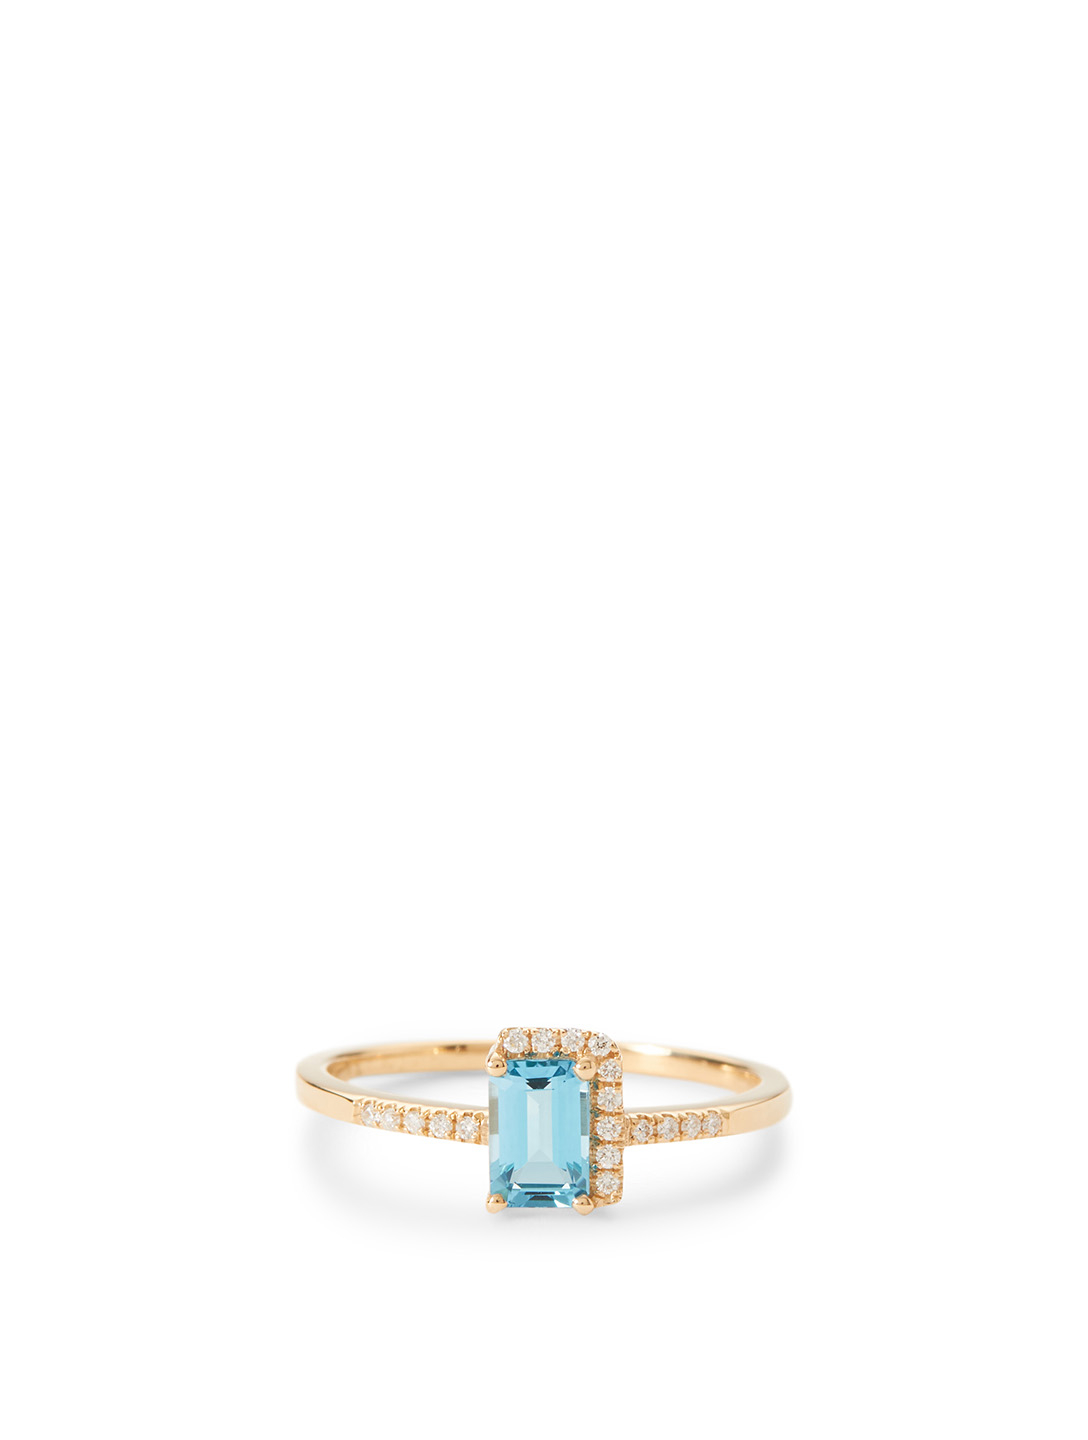 Amalfi 14 K Gold Ring With Blue Topaz And Diamonds by Holt Renfrew